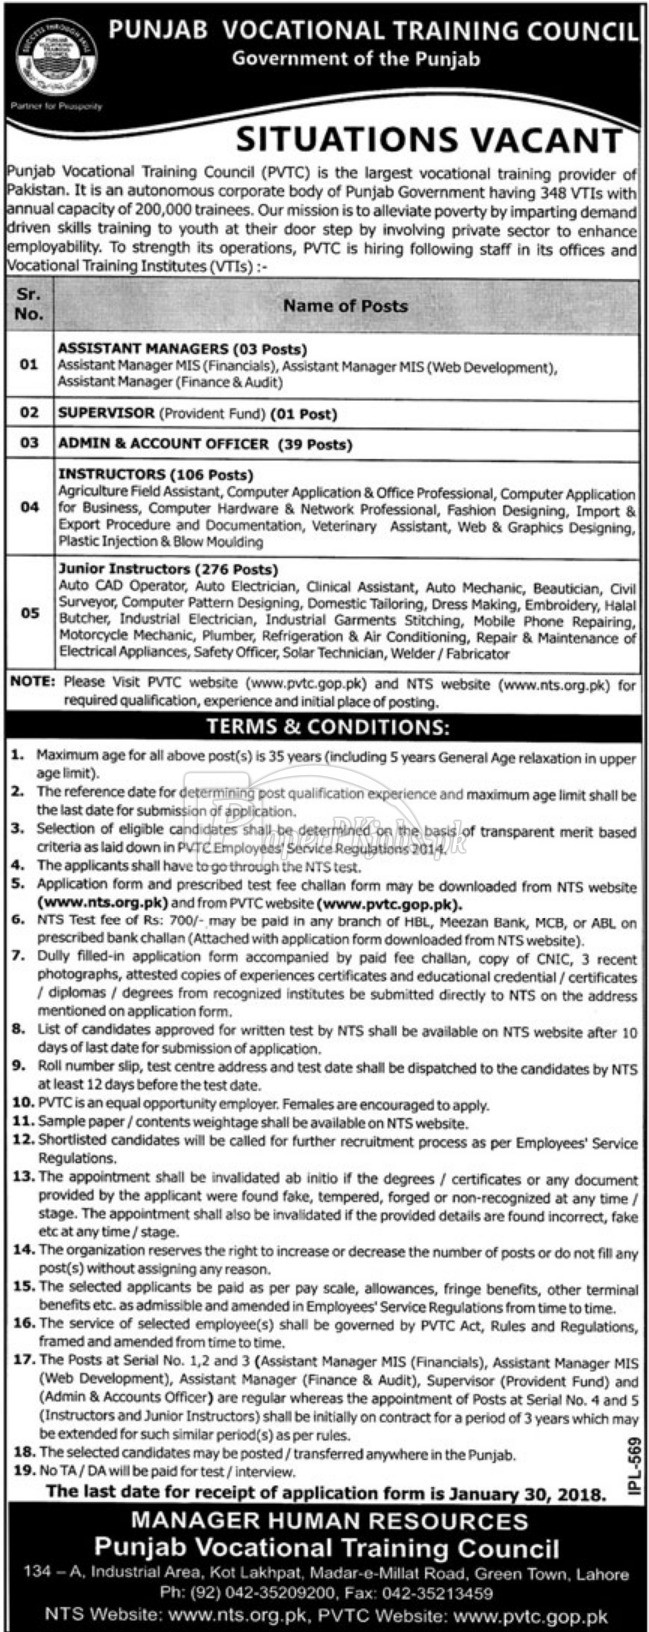 Punjab Vocational Training Council PVTC NTS Jobs 2018